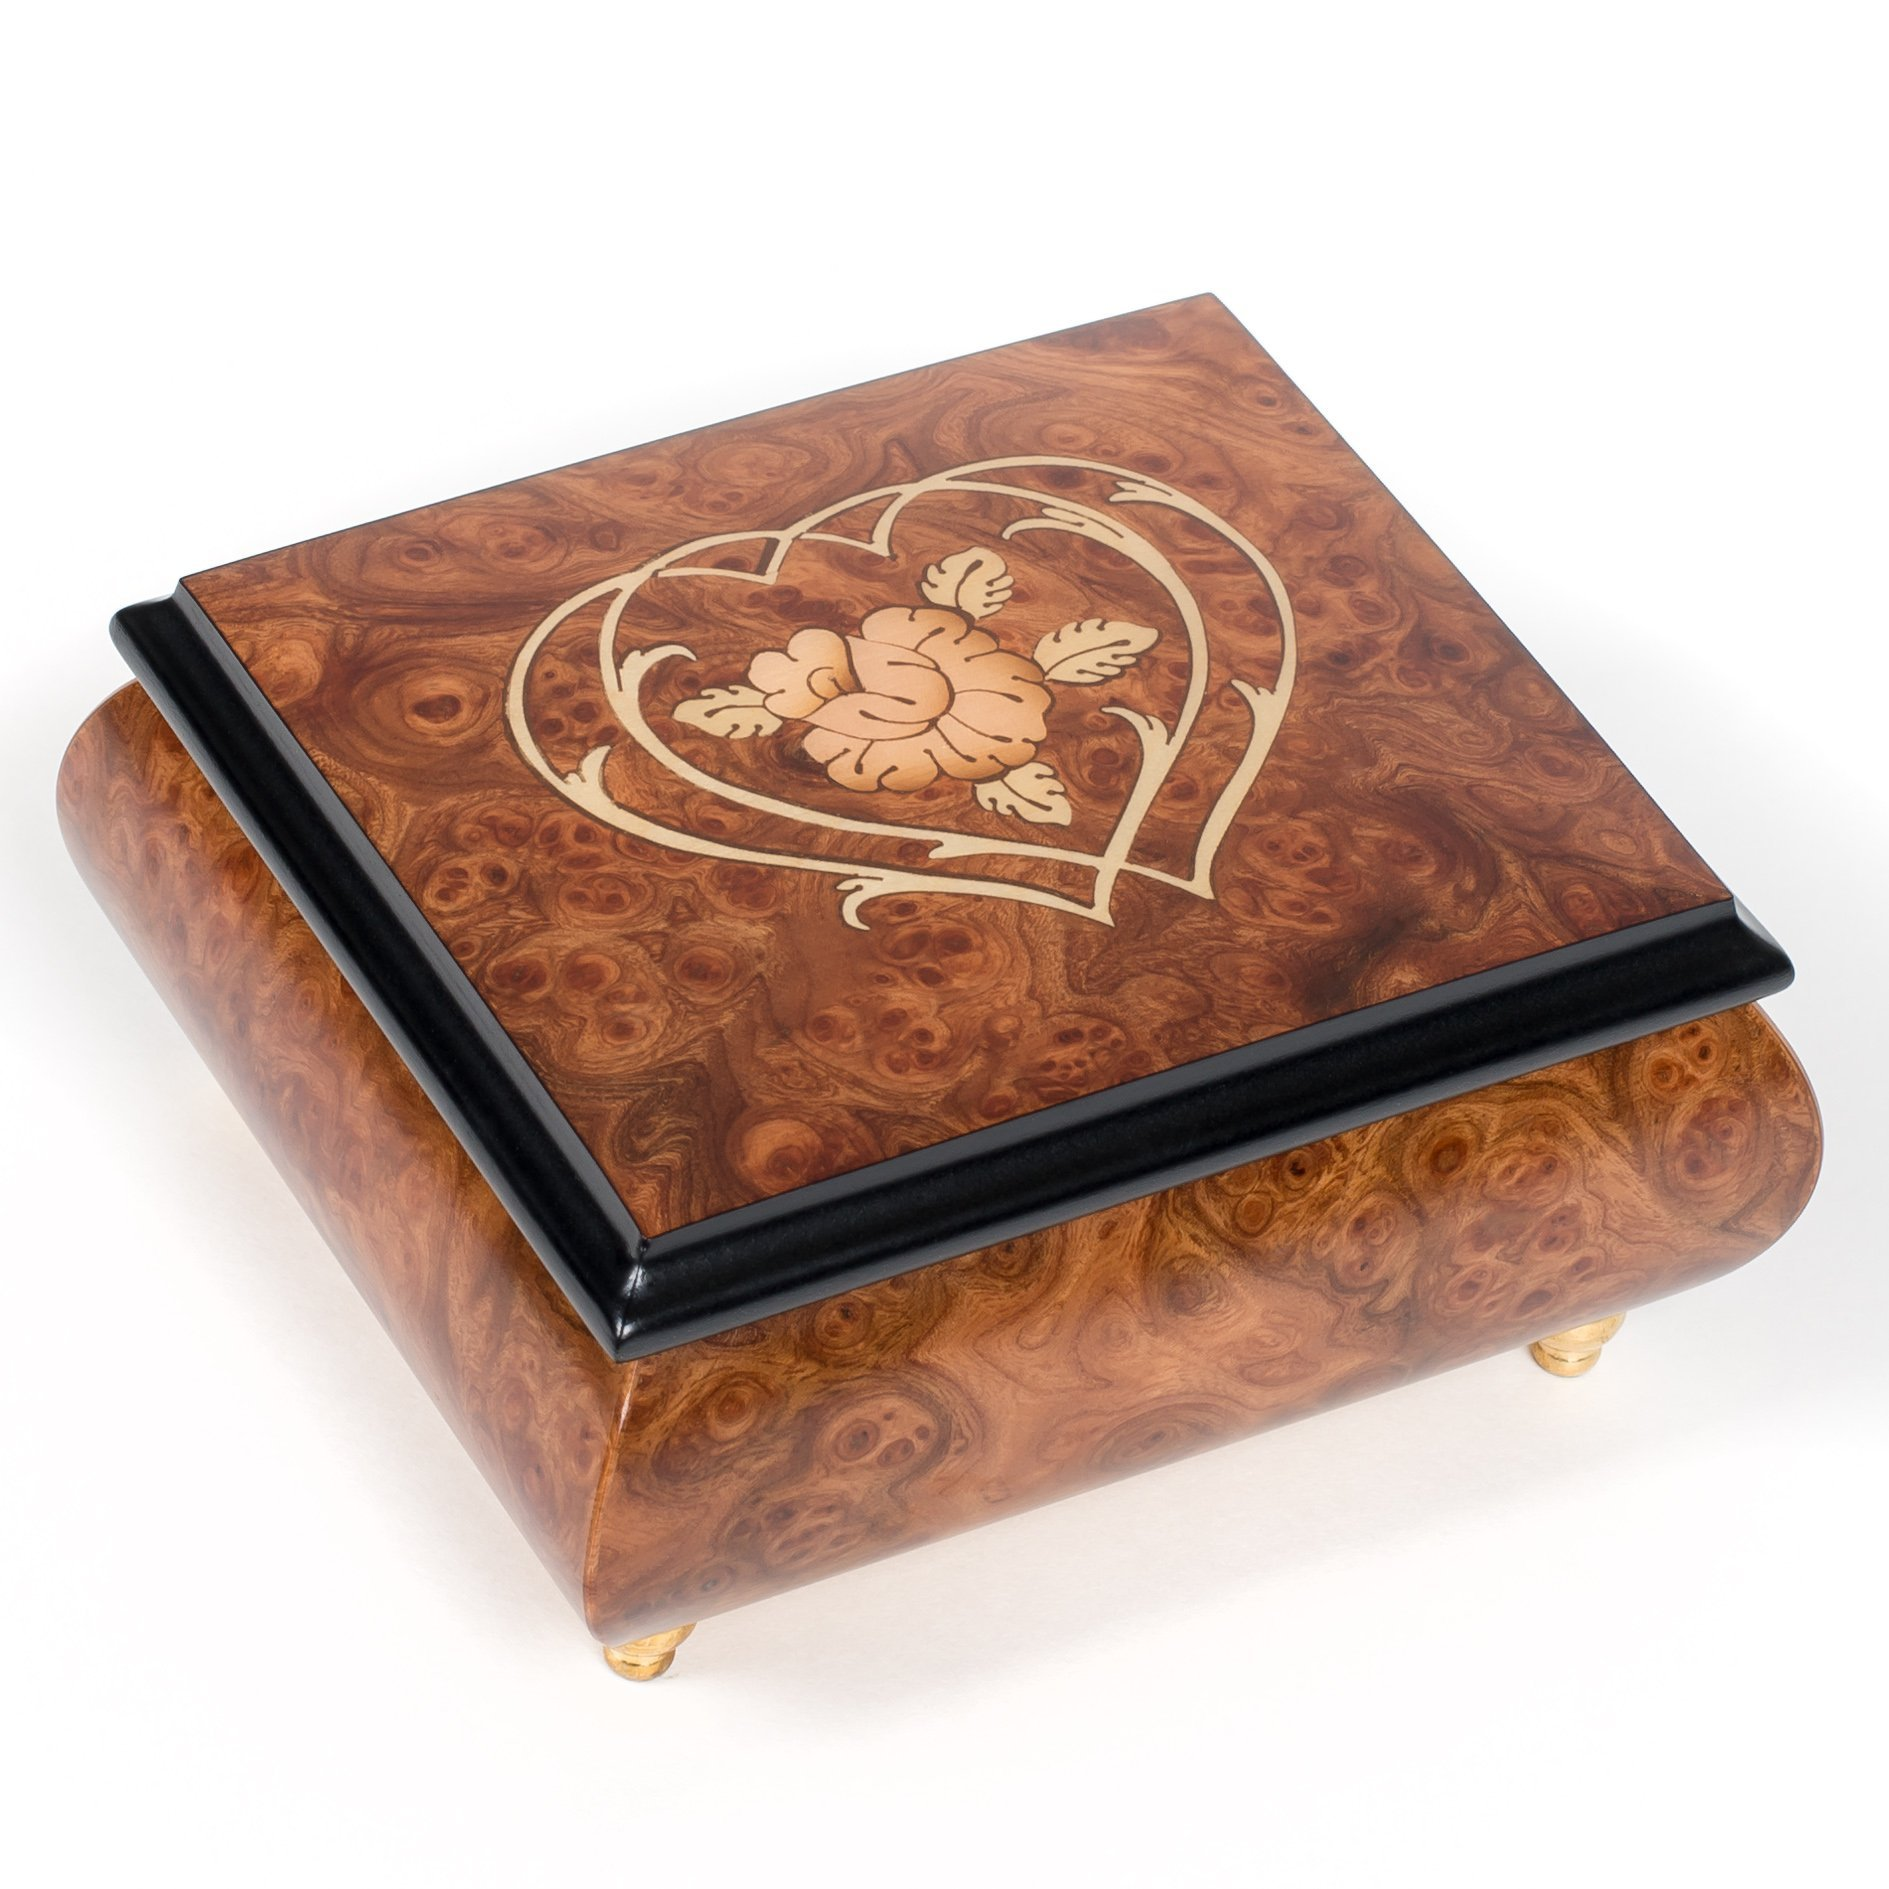 Double Hearts Italian Hand Crafted Inlaid Wood Jewelry Music Box Plays Ode to Joy by Splendid Music Box Co.